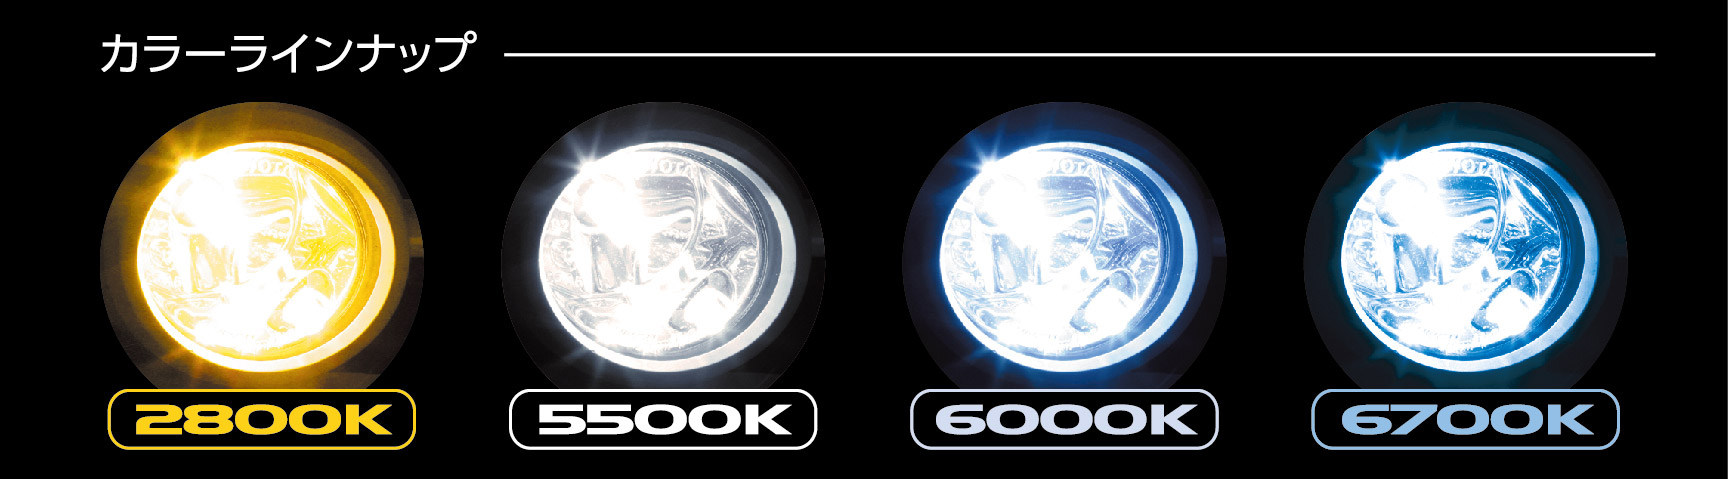 Led Head Fog Valve Dx 3800 Series My Absolute Jdm Part Toyota Vellfire Wiring Diagram 6000 K Sets The Same Color As Valenti Hid And Premium White Bulb Total Coordination Of Can Be Done